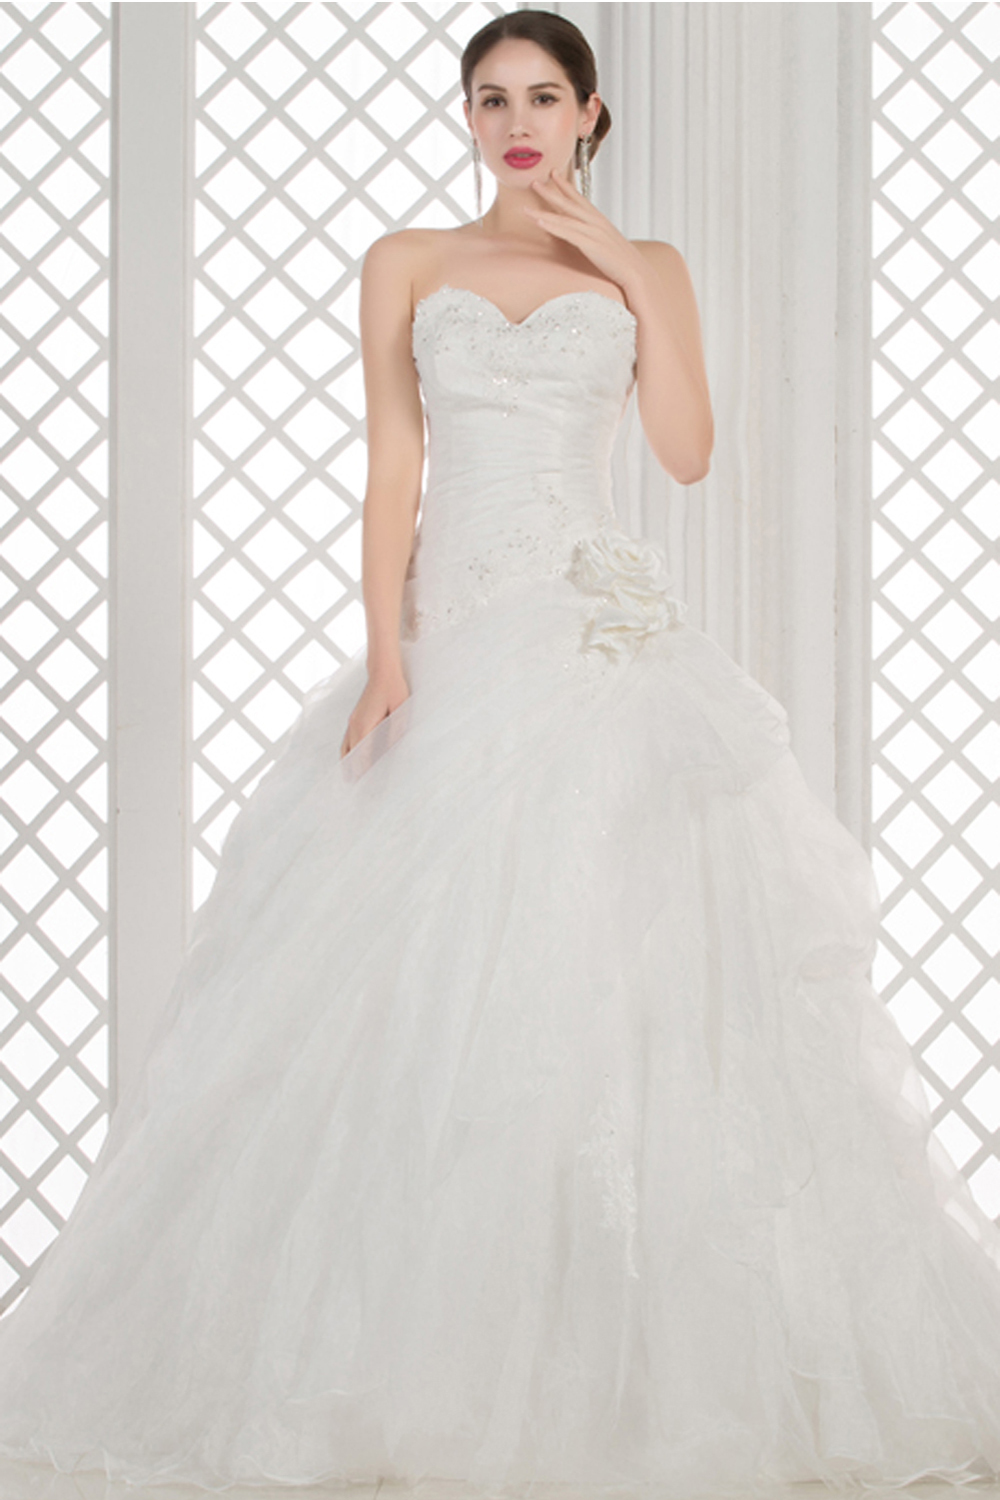 A-Line/Princess Strapless Floor Length Tulle Wedding Dress with Flowers